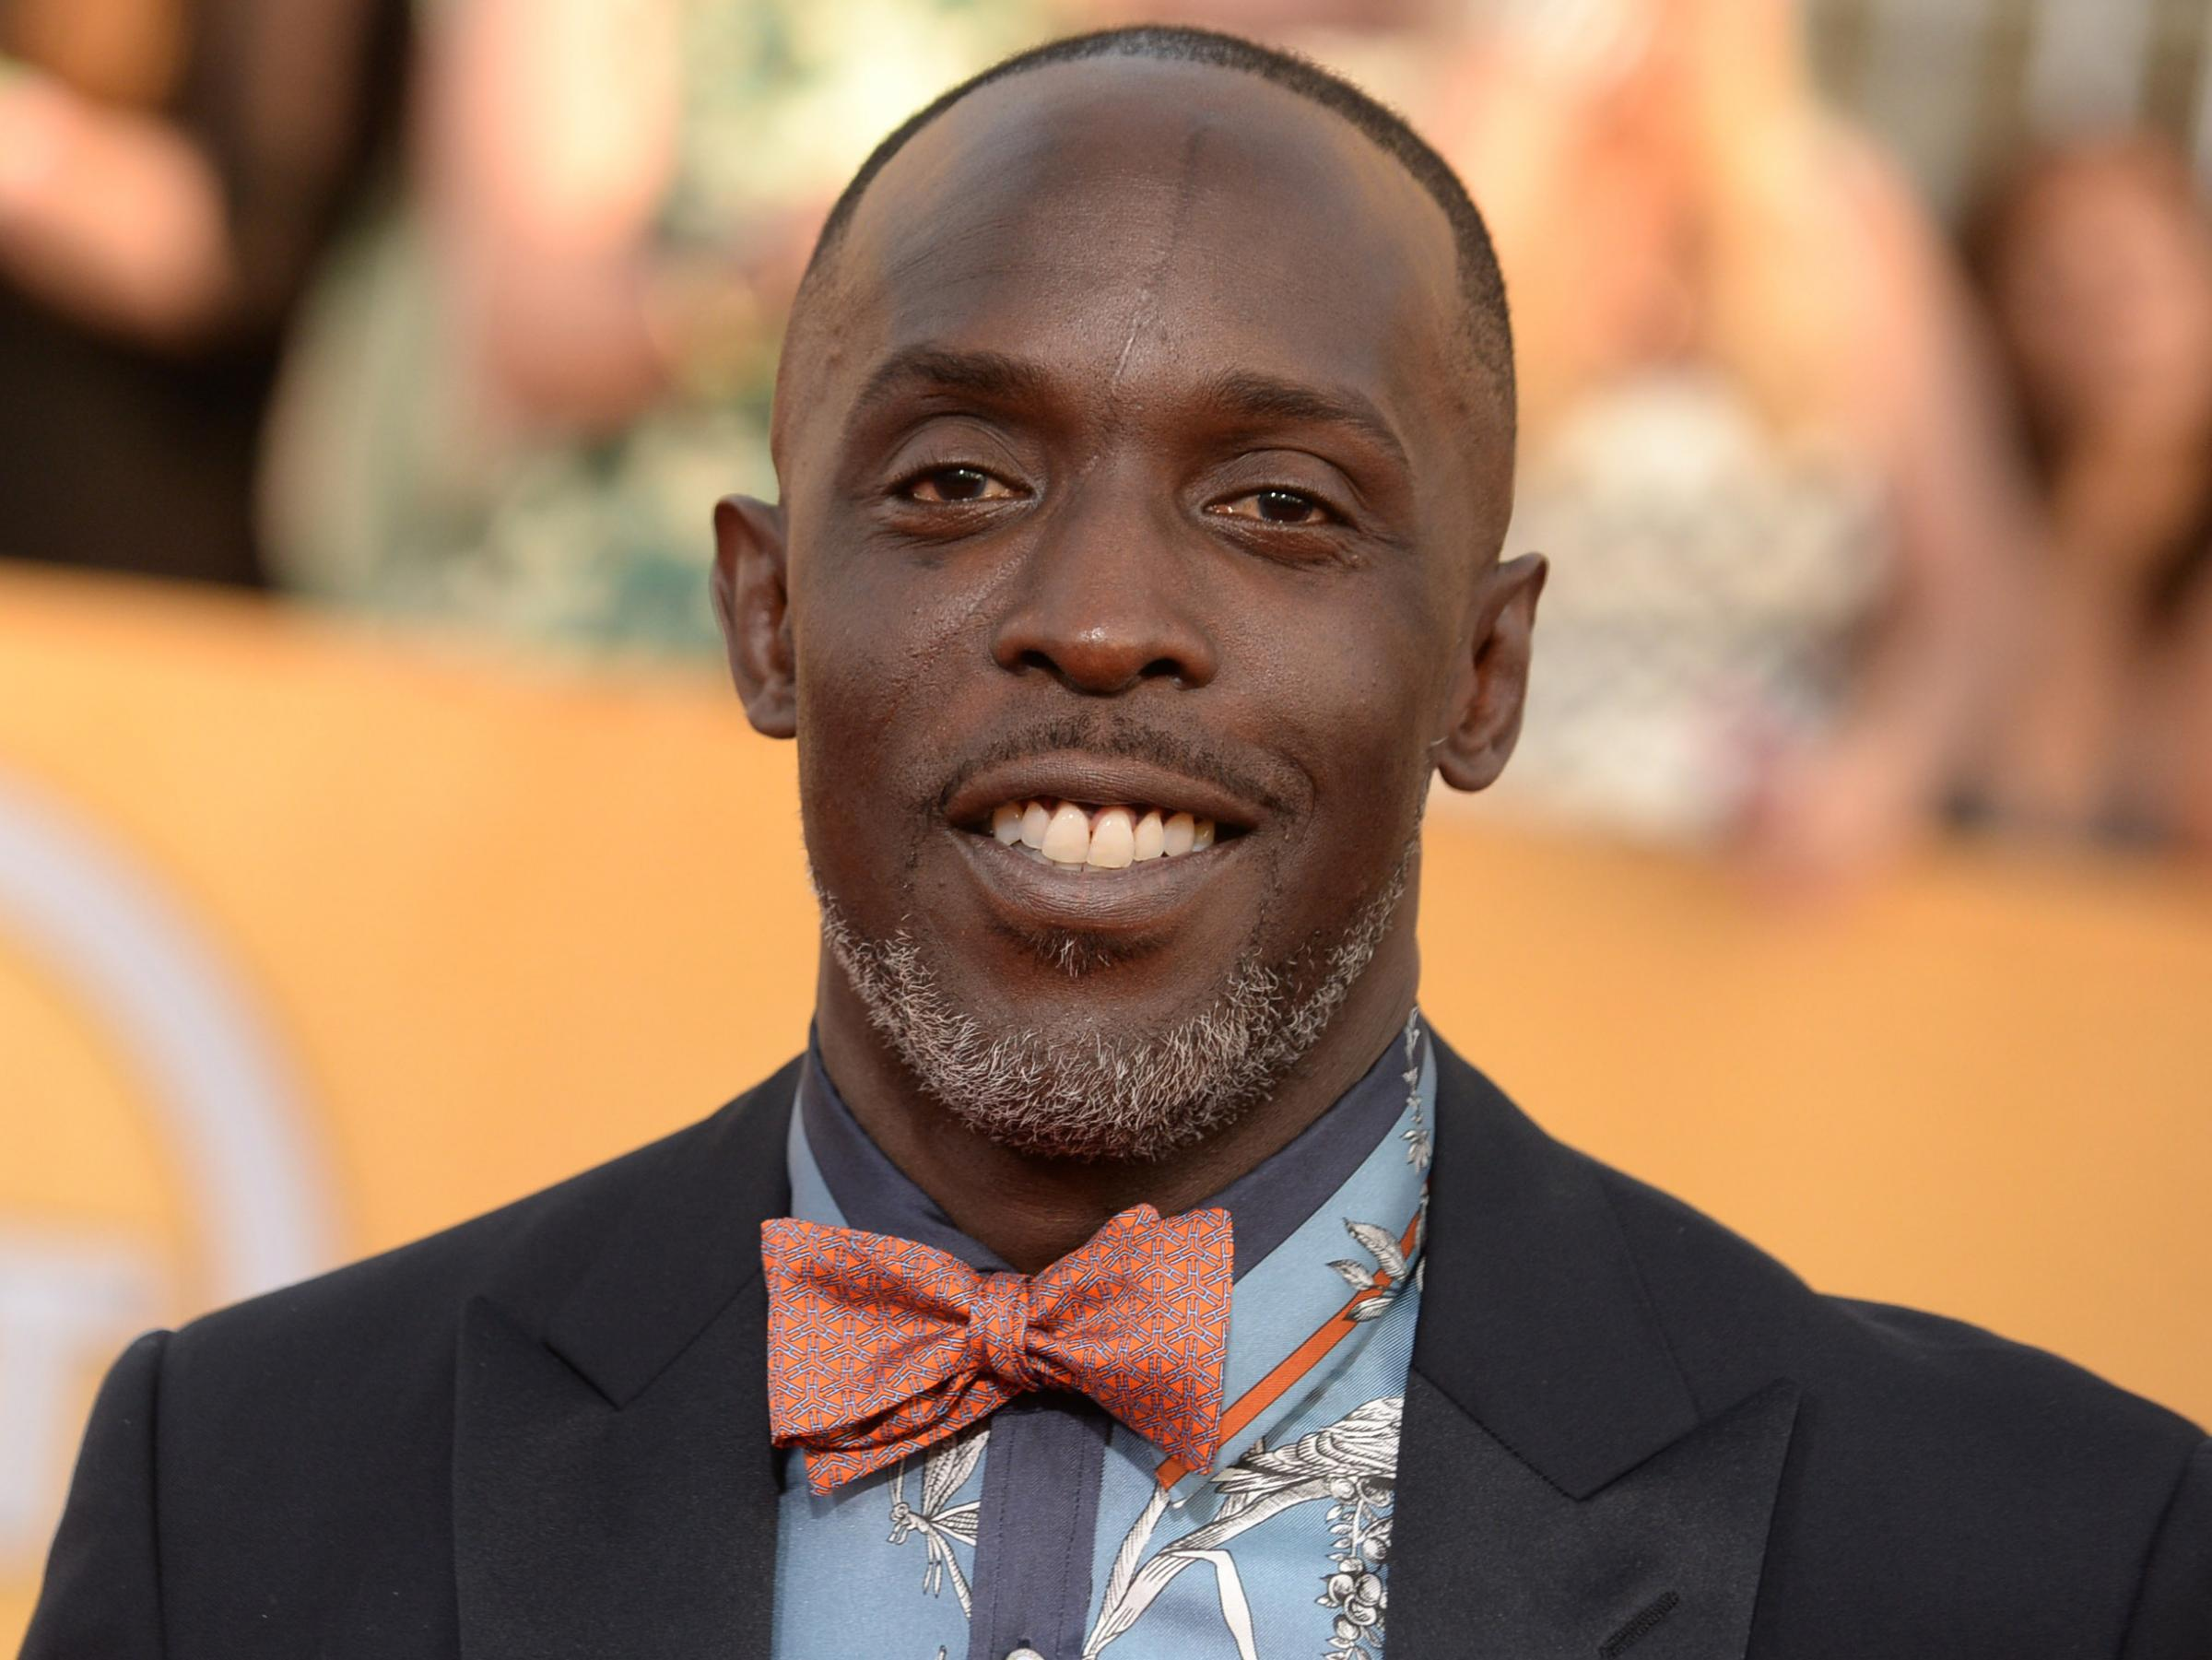 Afbeeldingsresultaat voor michael kenneth williams